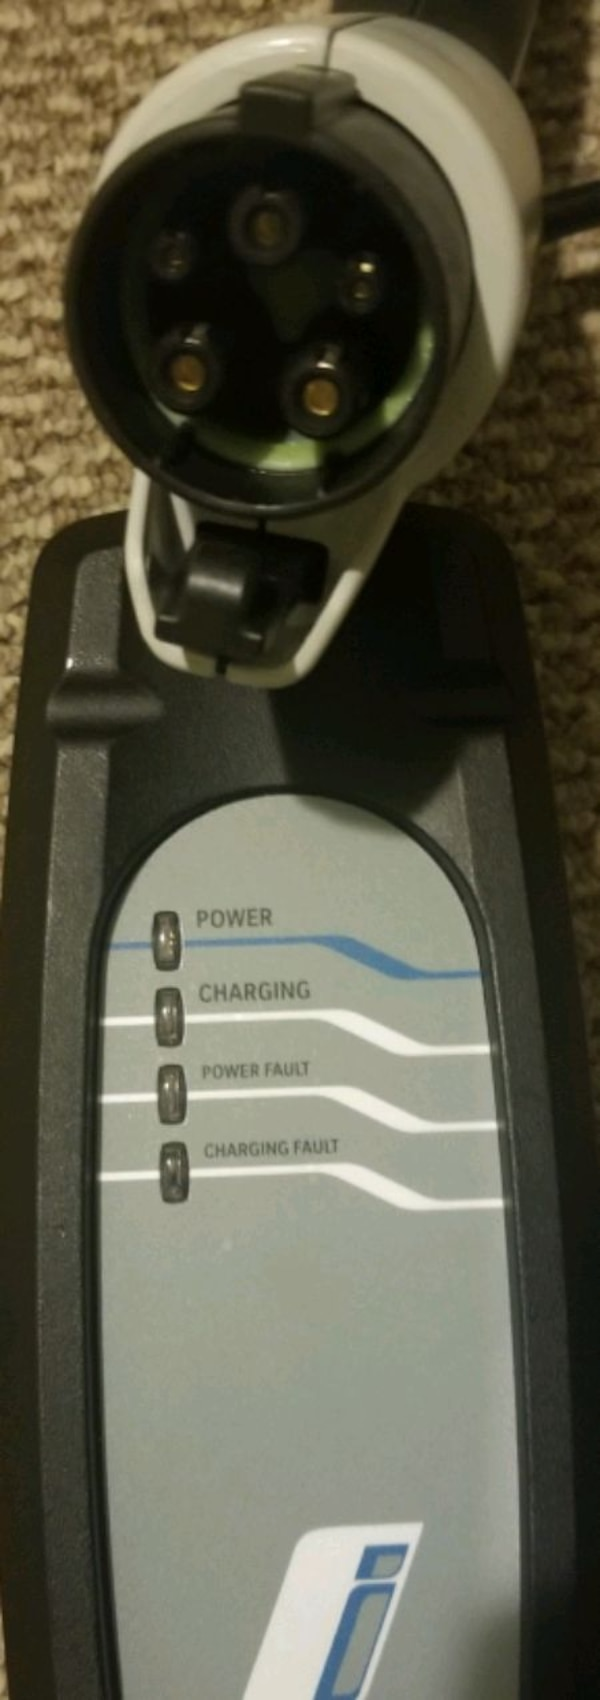 Delphi Electric Car Battery Charger  [PHONE NUMBER HIDDEN]  36a14a46-62b8-4867-b030-186ff11740b9